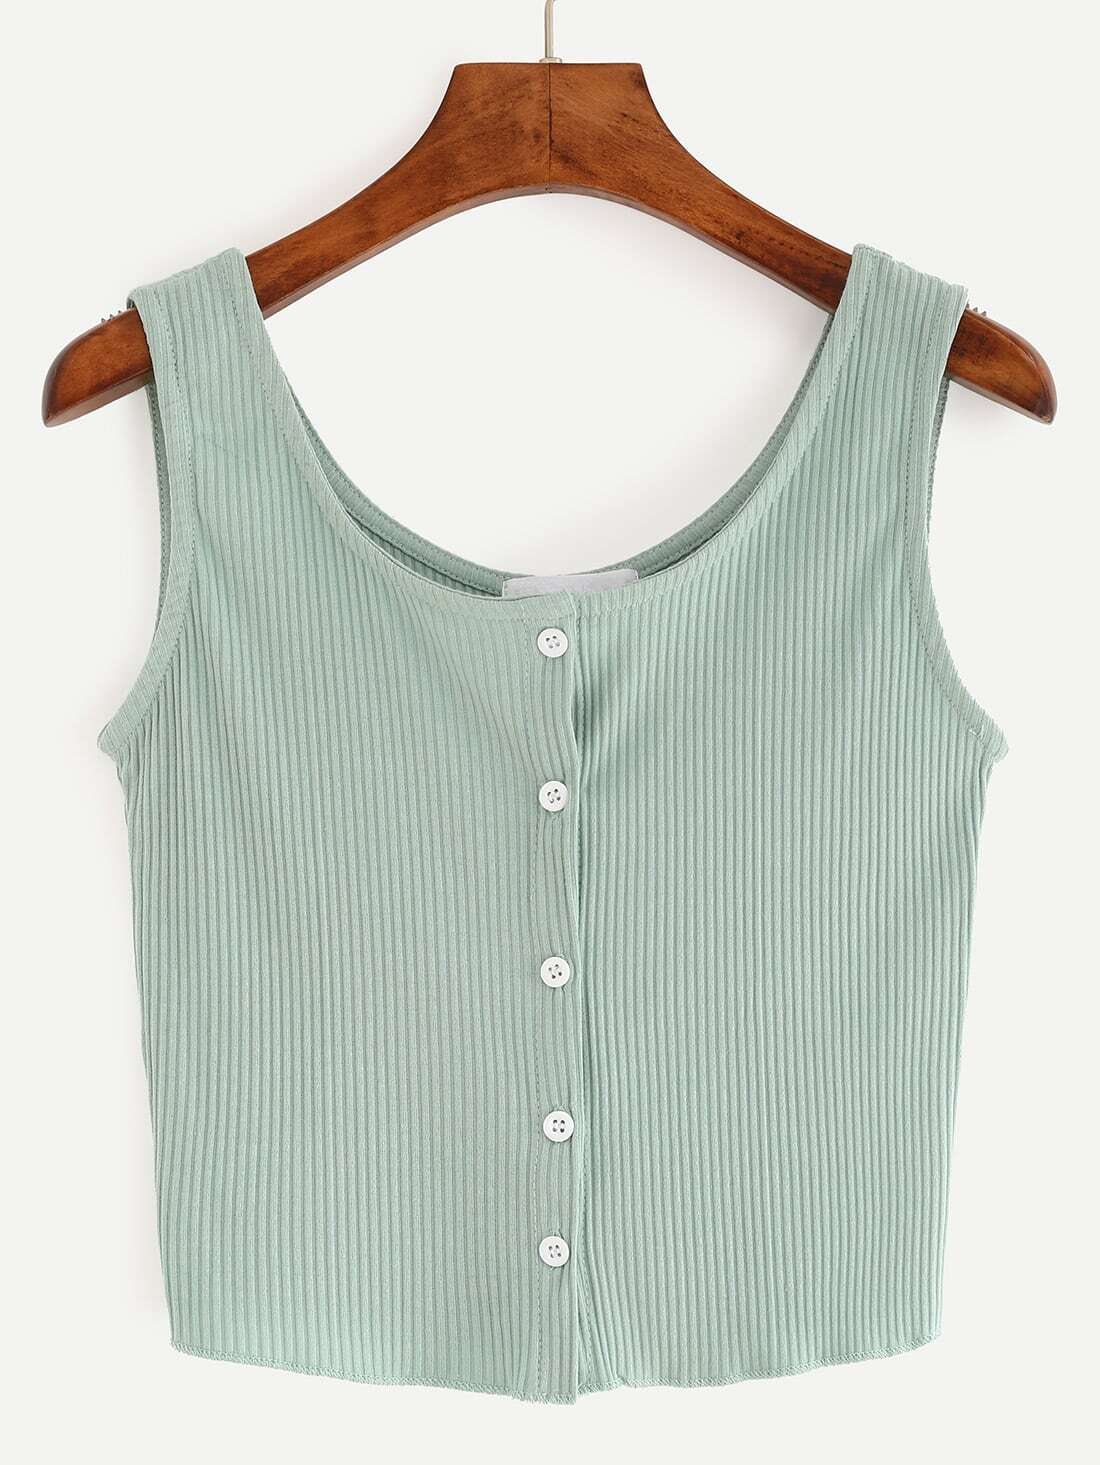 Buttoned Front Ribbed Knit Crop Tank Top vest160524076